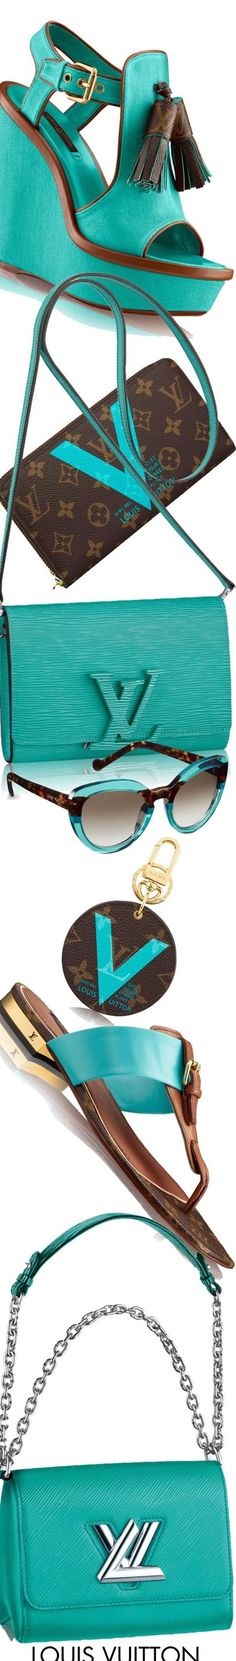 Louis Vuitton collection in turquoise and brown.